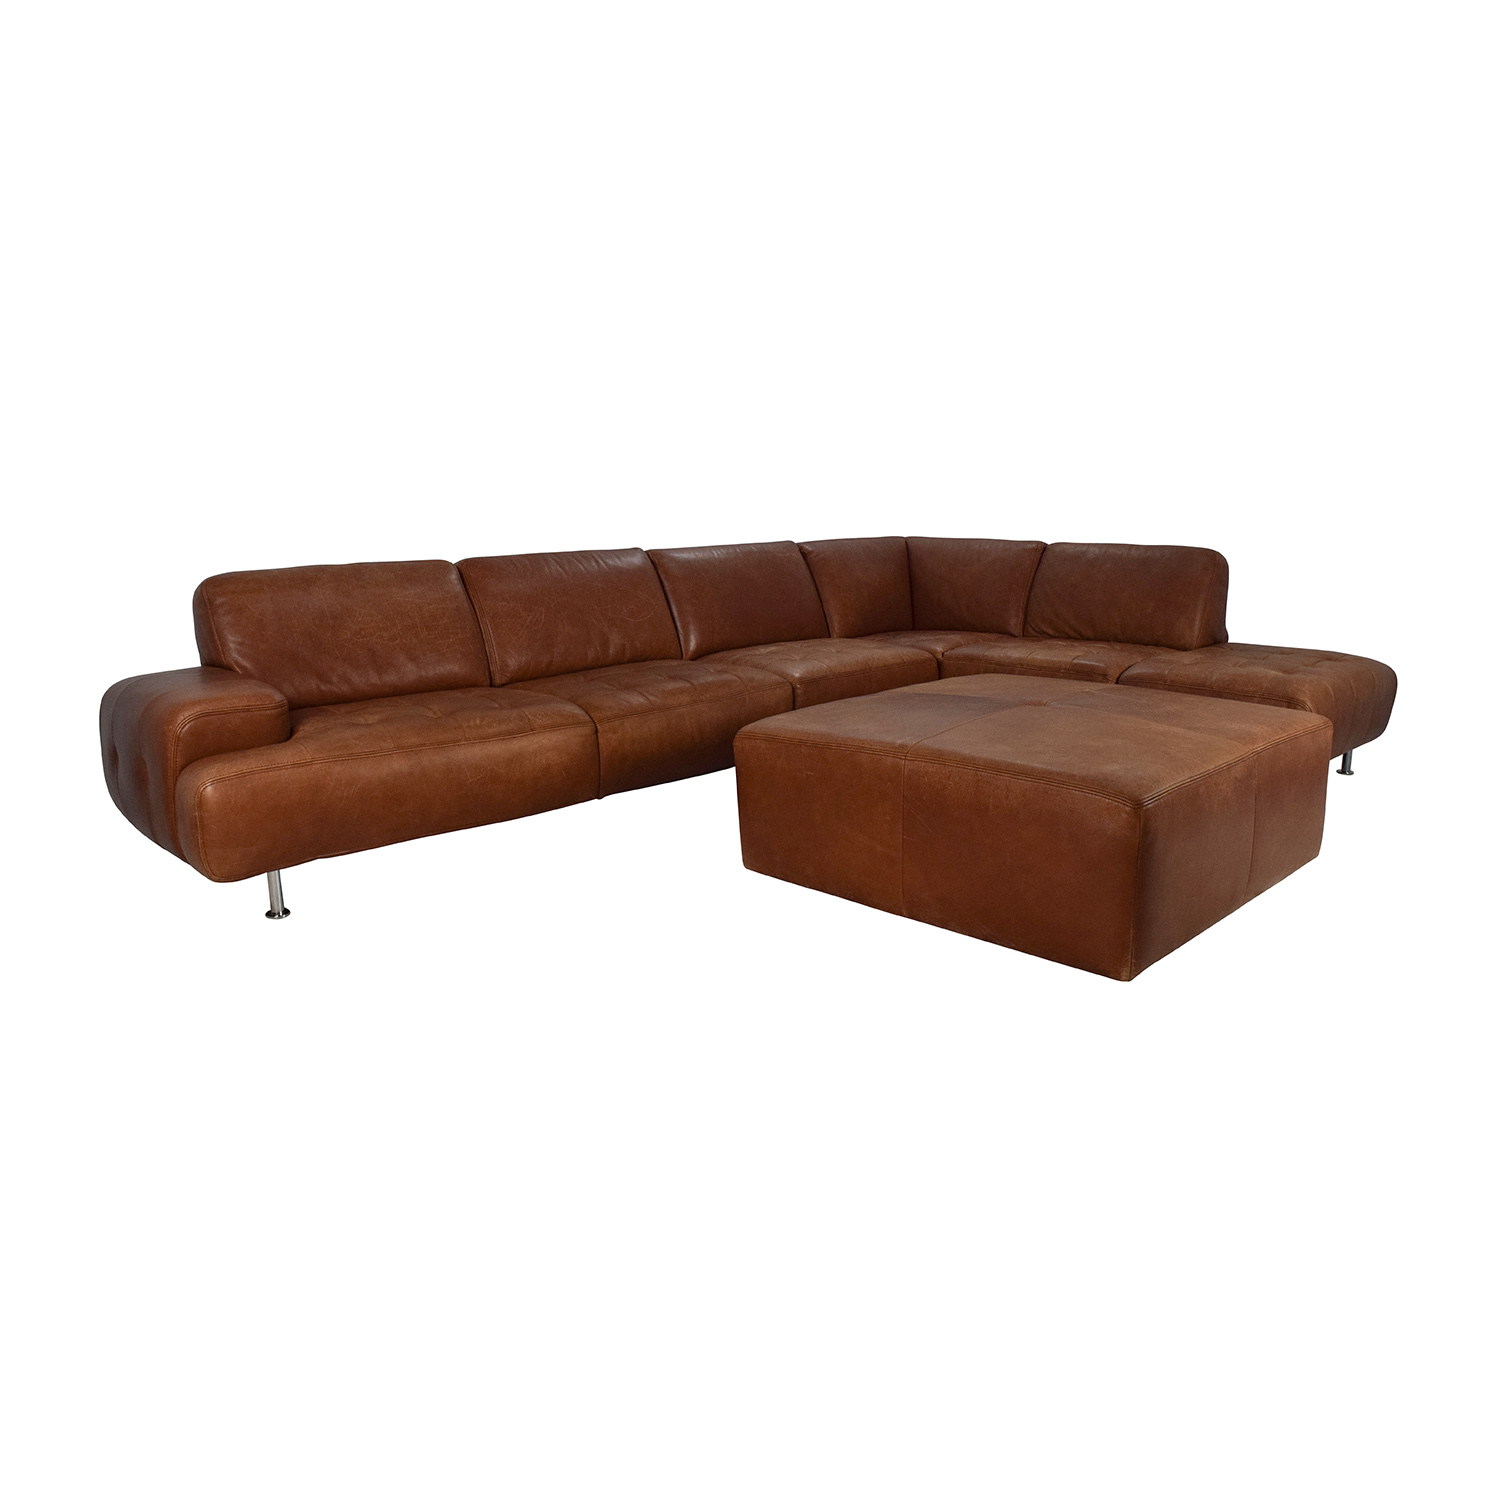 lazy boy sofa furniture village modern chair set leather sectionals charming home design